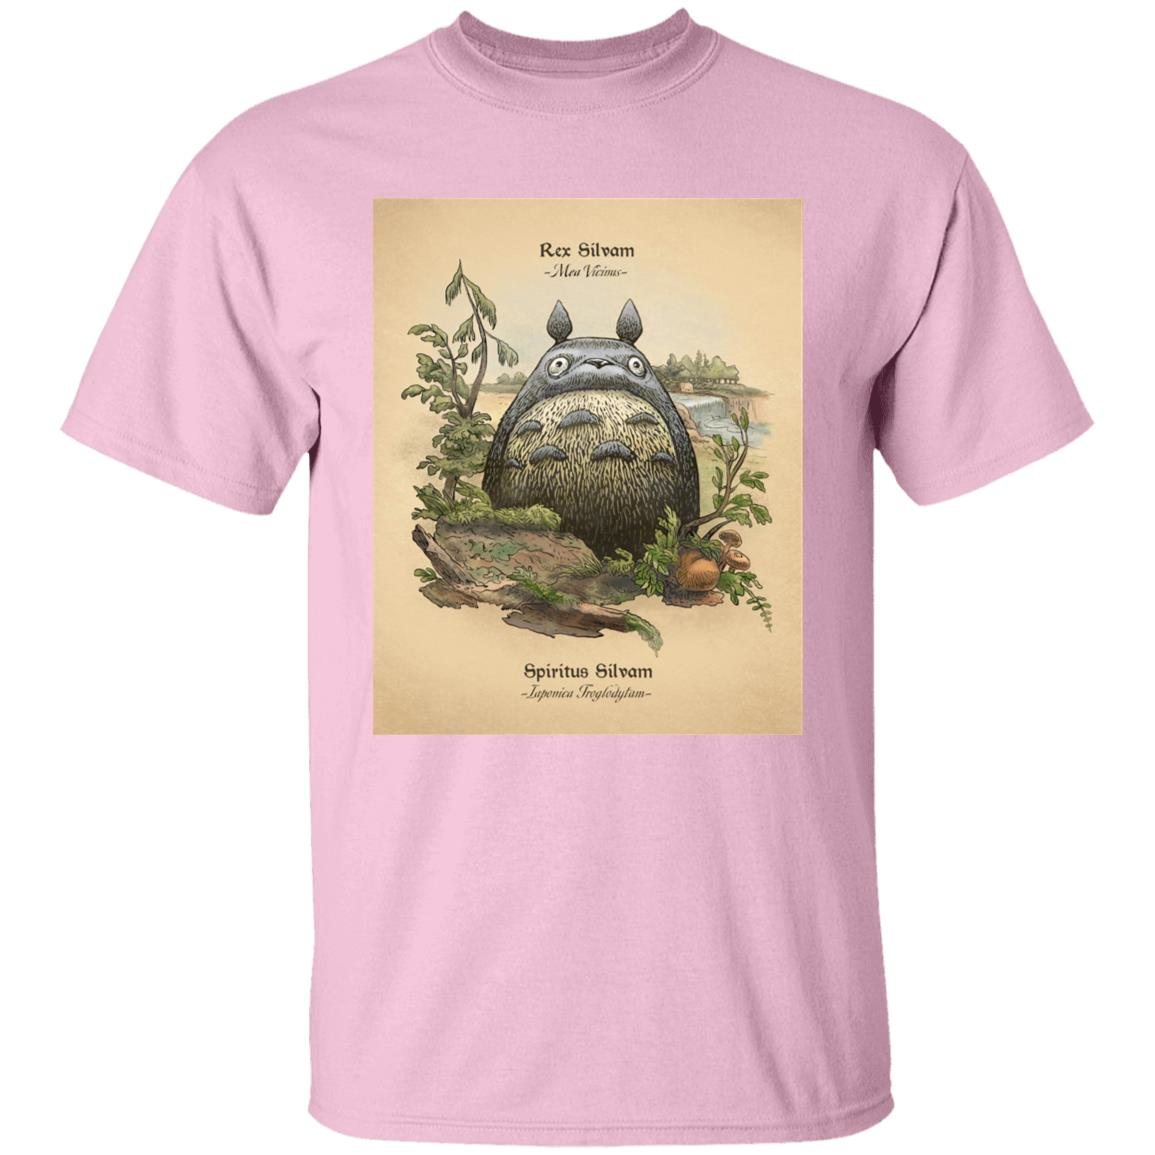 Totoro in the Forest Classic T Shirt